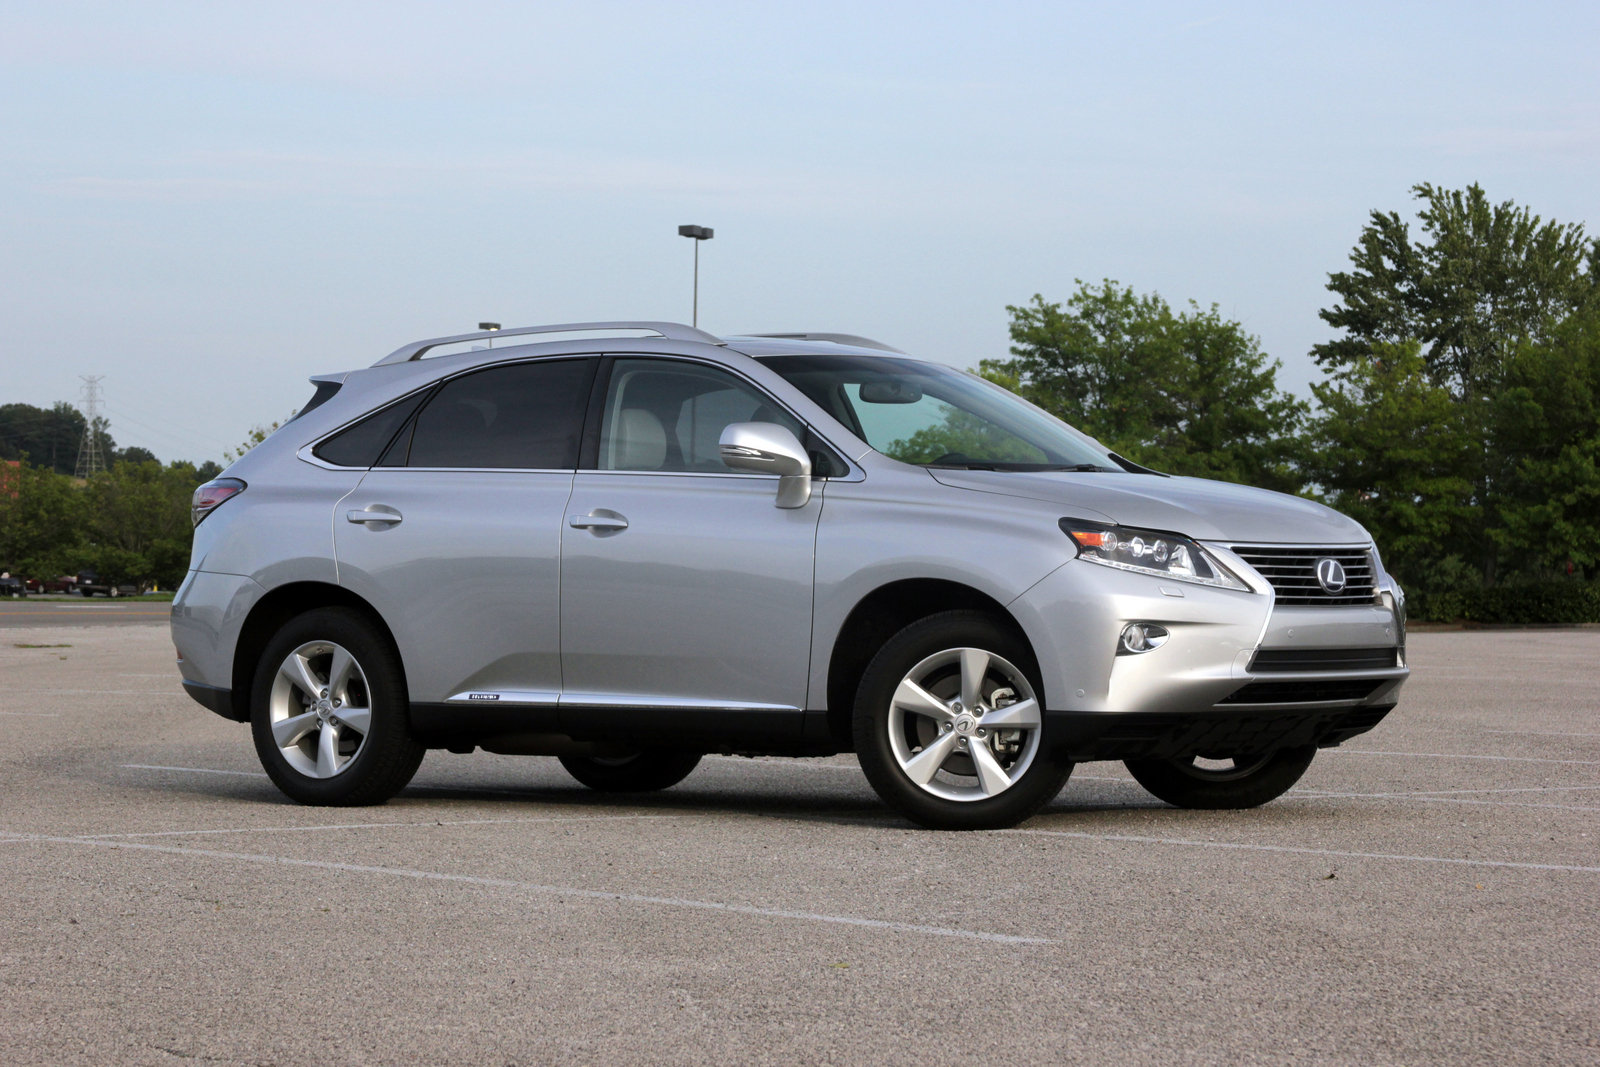 2015 lexus rx 450h driven picture 558305 car review top speed. Black Bedroom Furniture Sets. Home Design Ideas